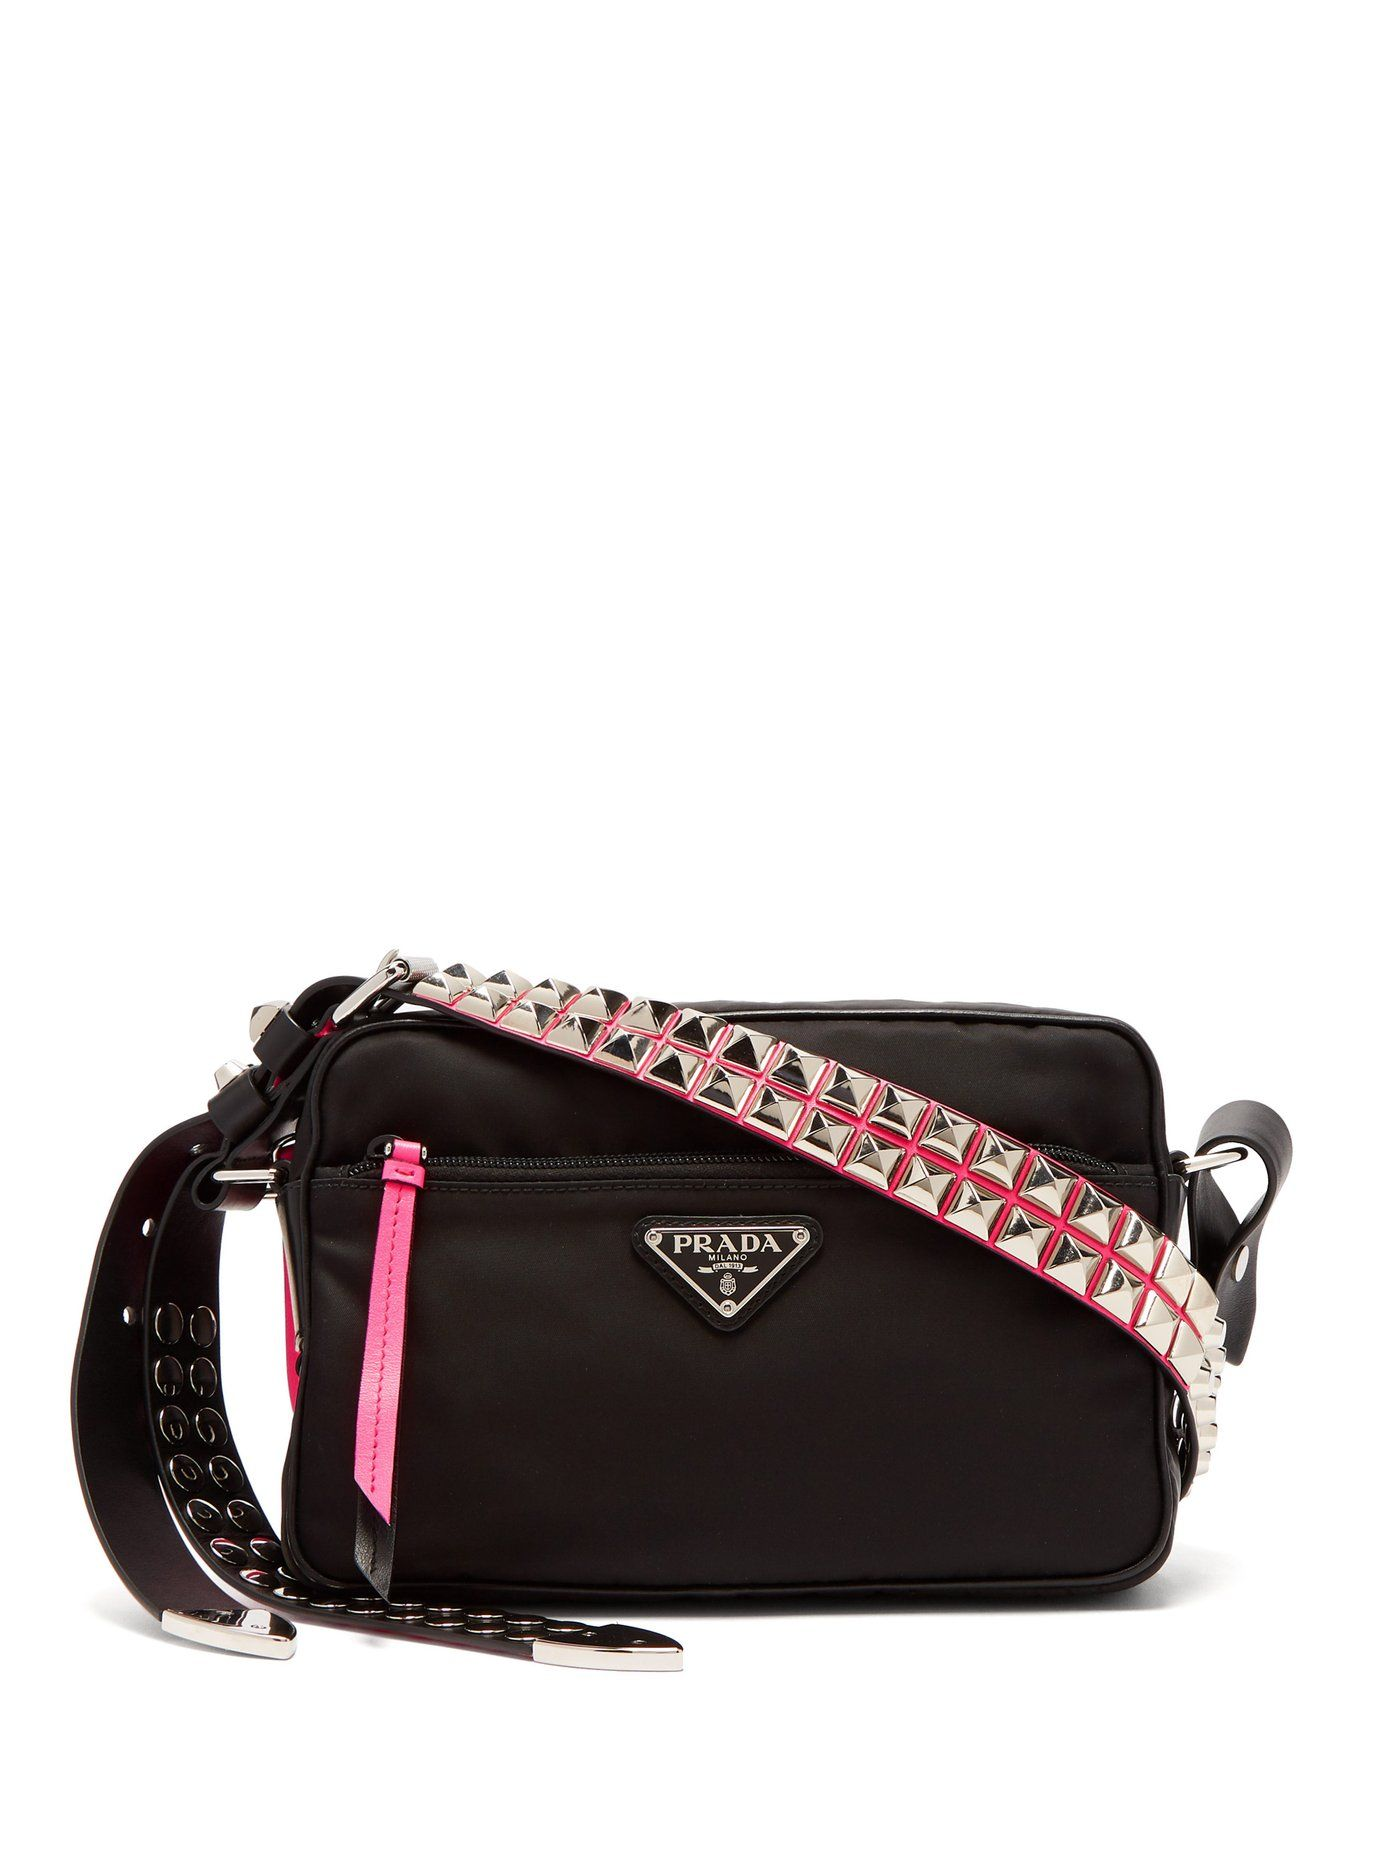 97107deddeff New Vela studded nylon shoulder bag